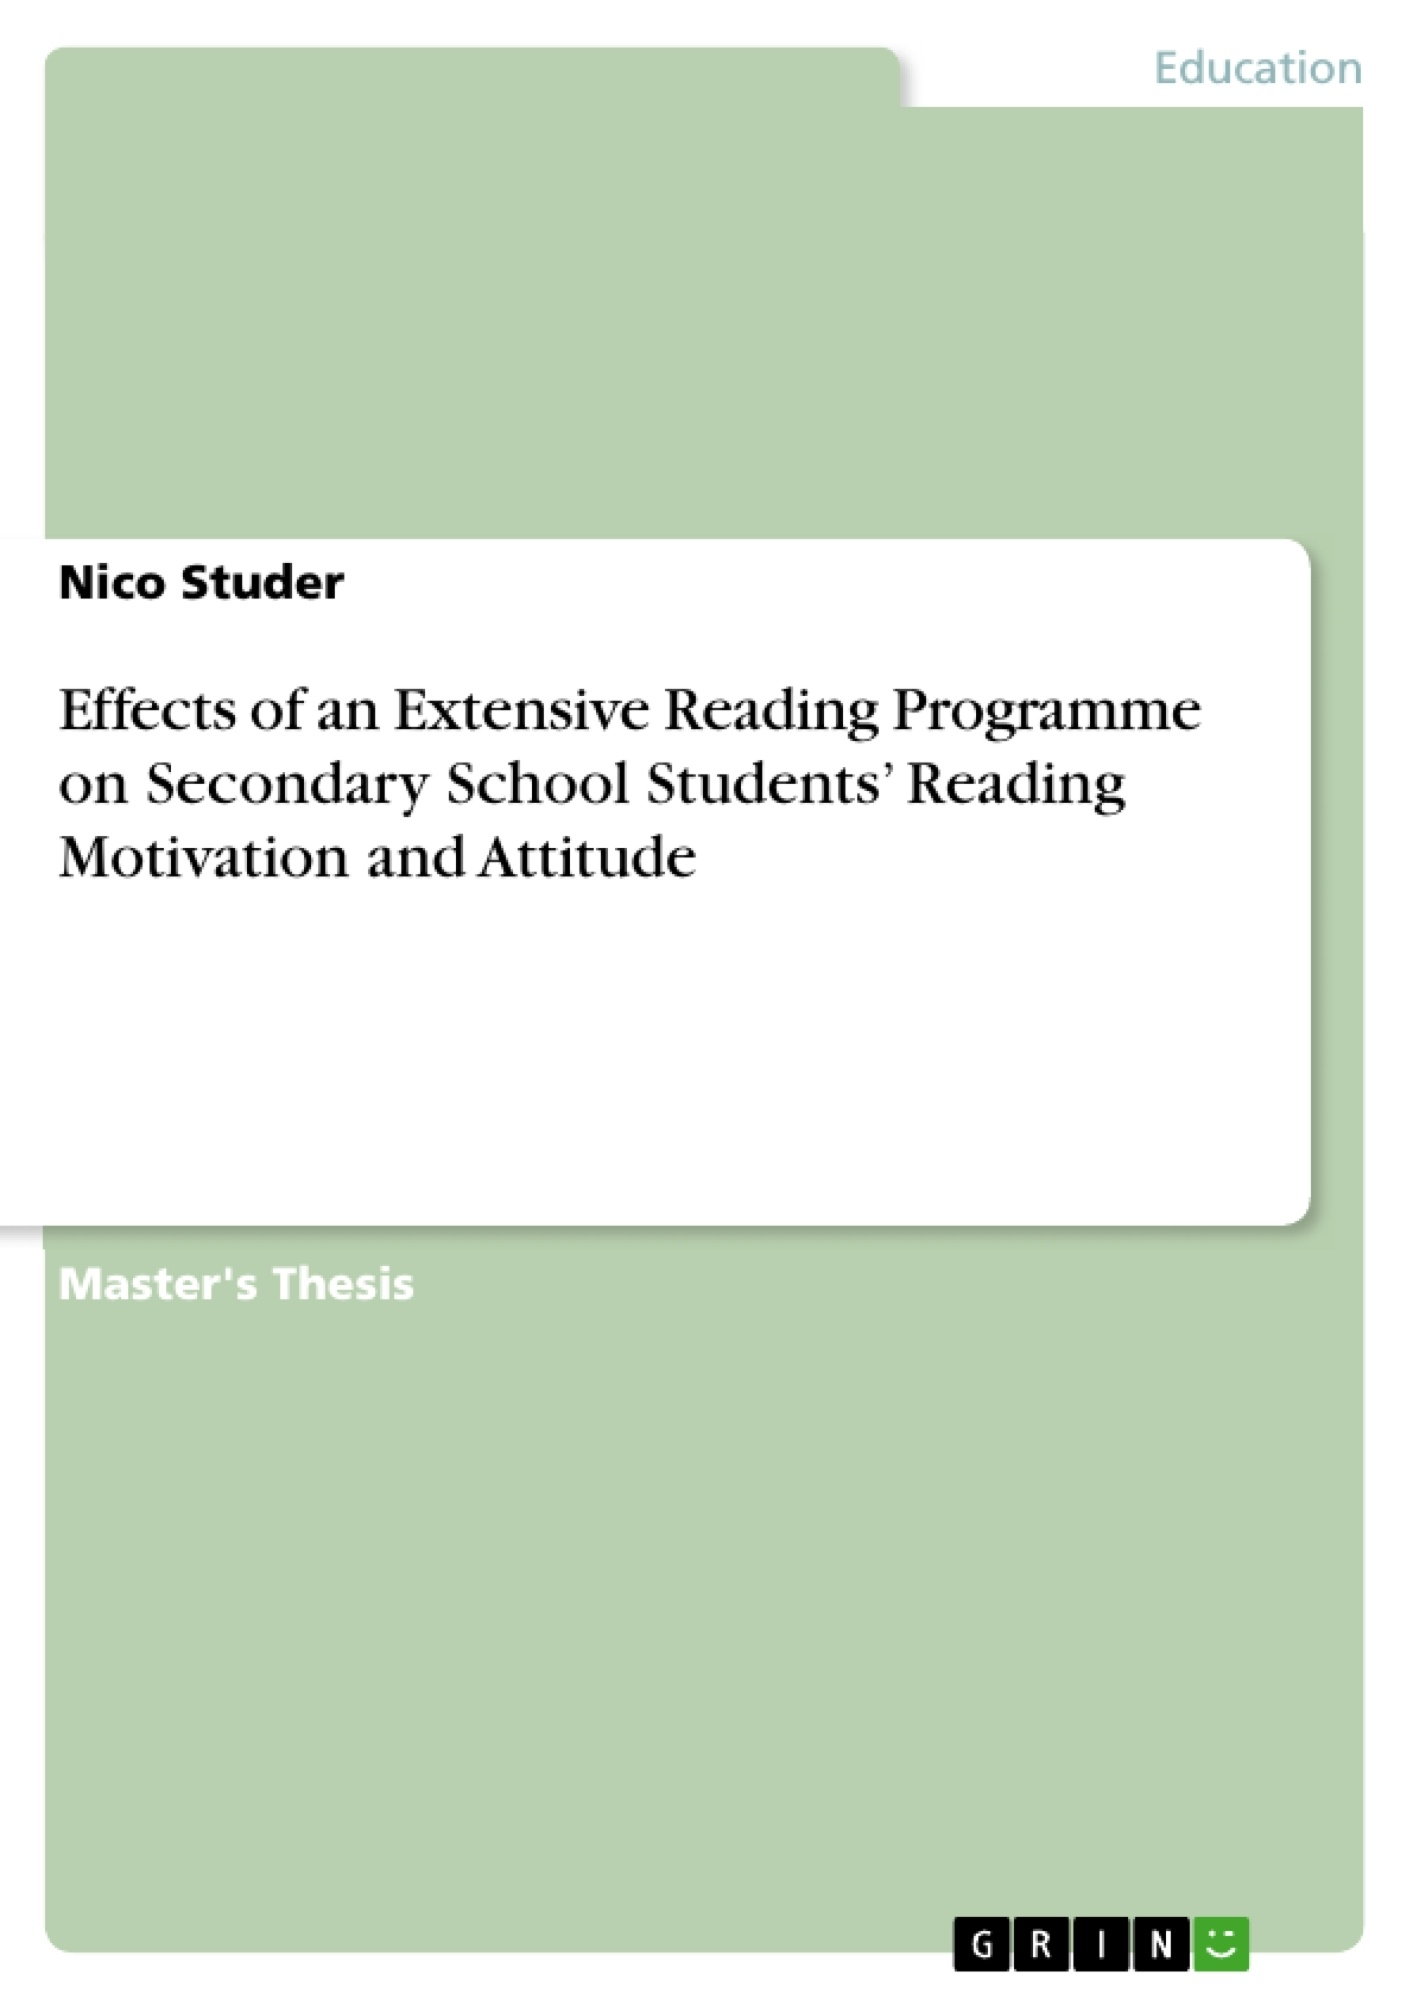 Title: Effects of an Extensive Reading Programme on Secondary School Students' Reading Motivation and Attitude